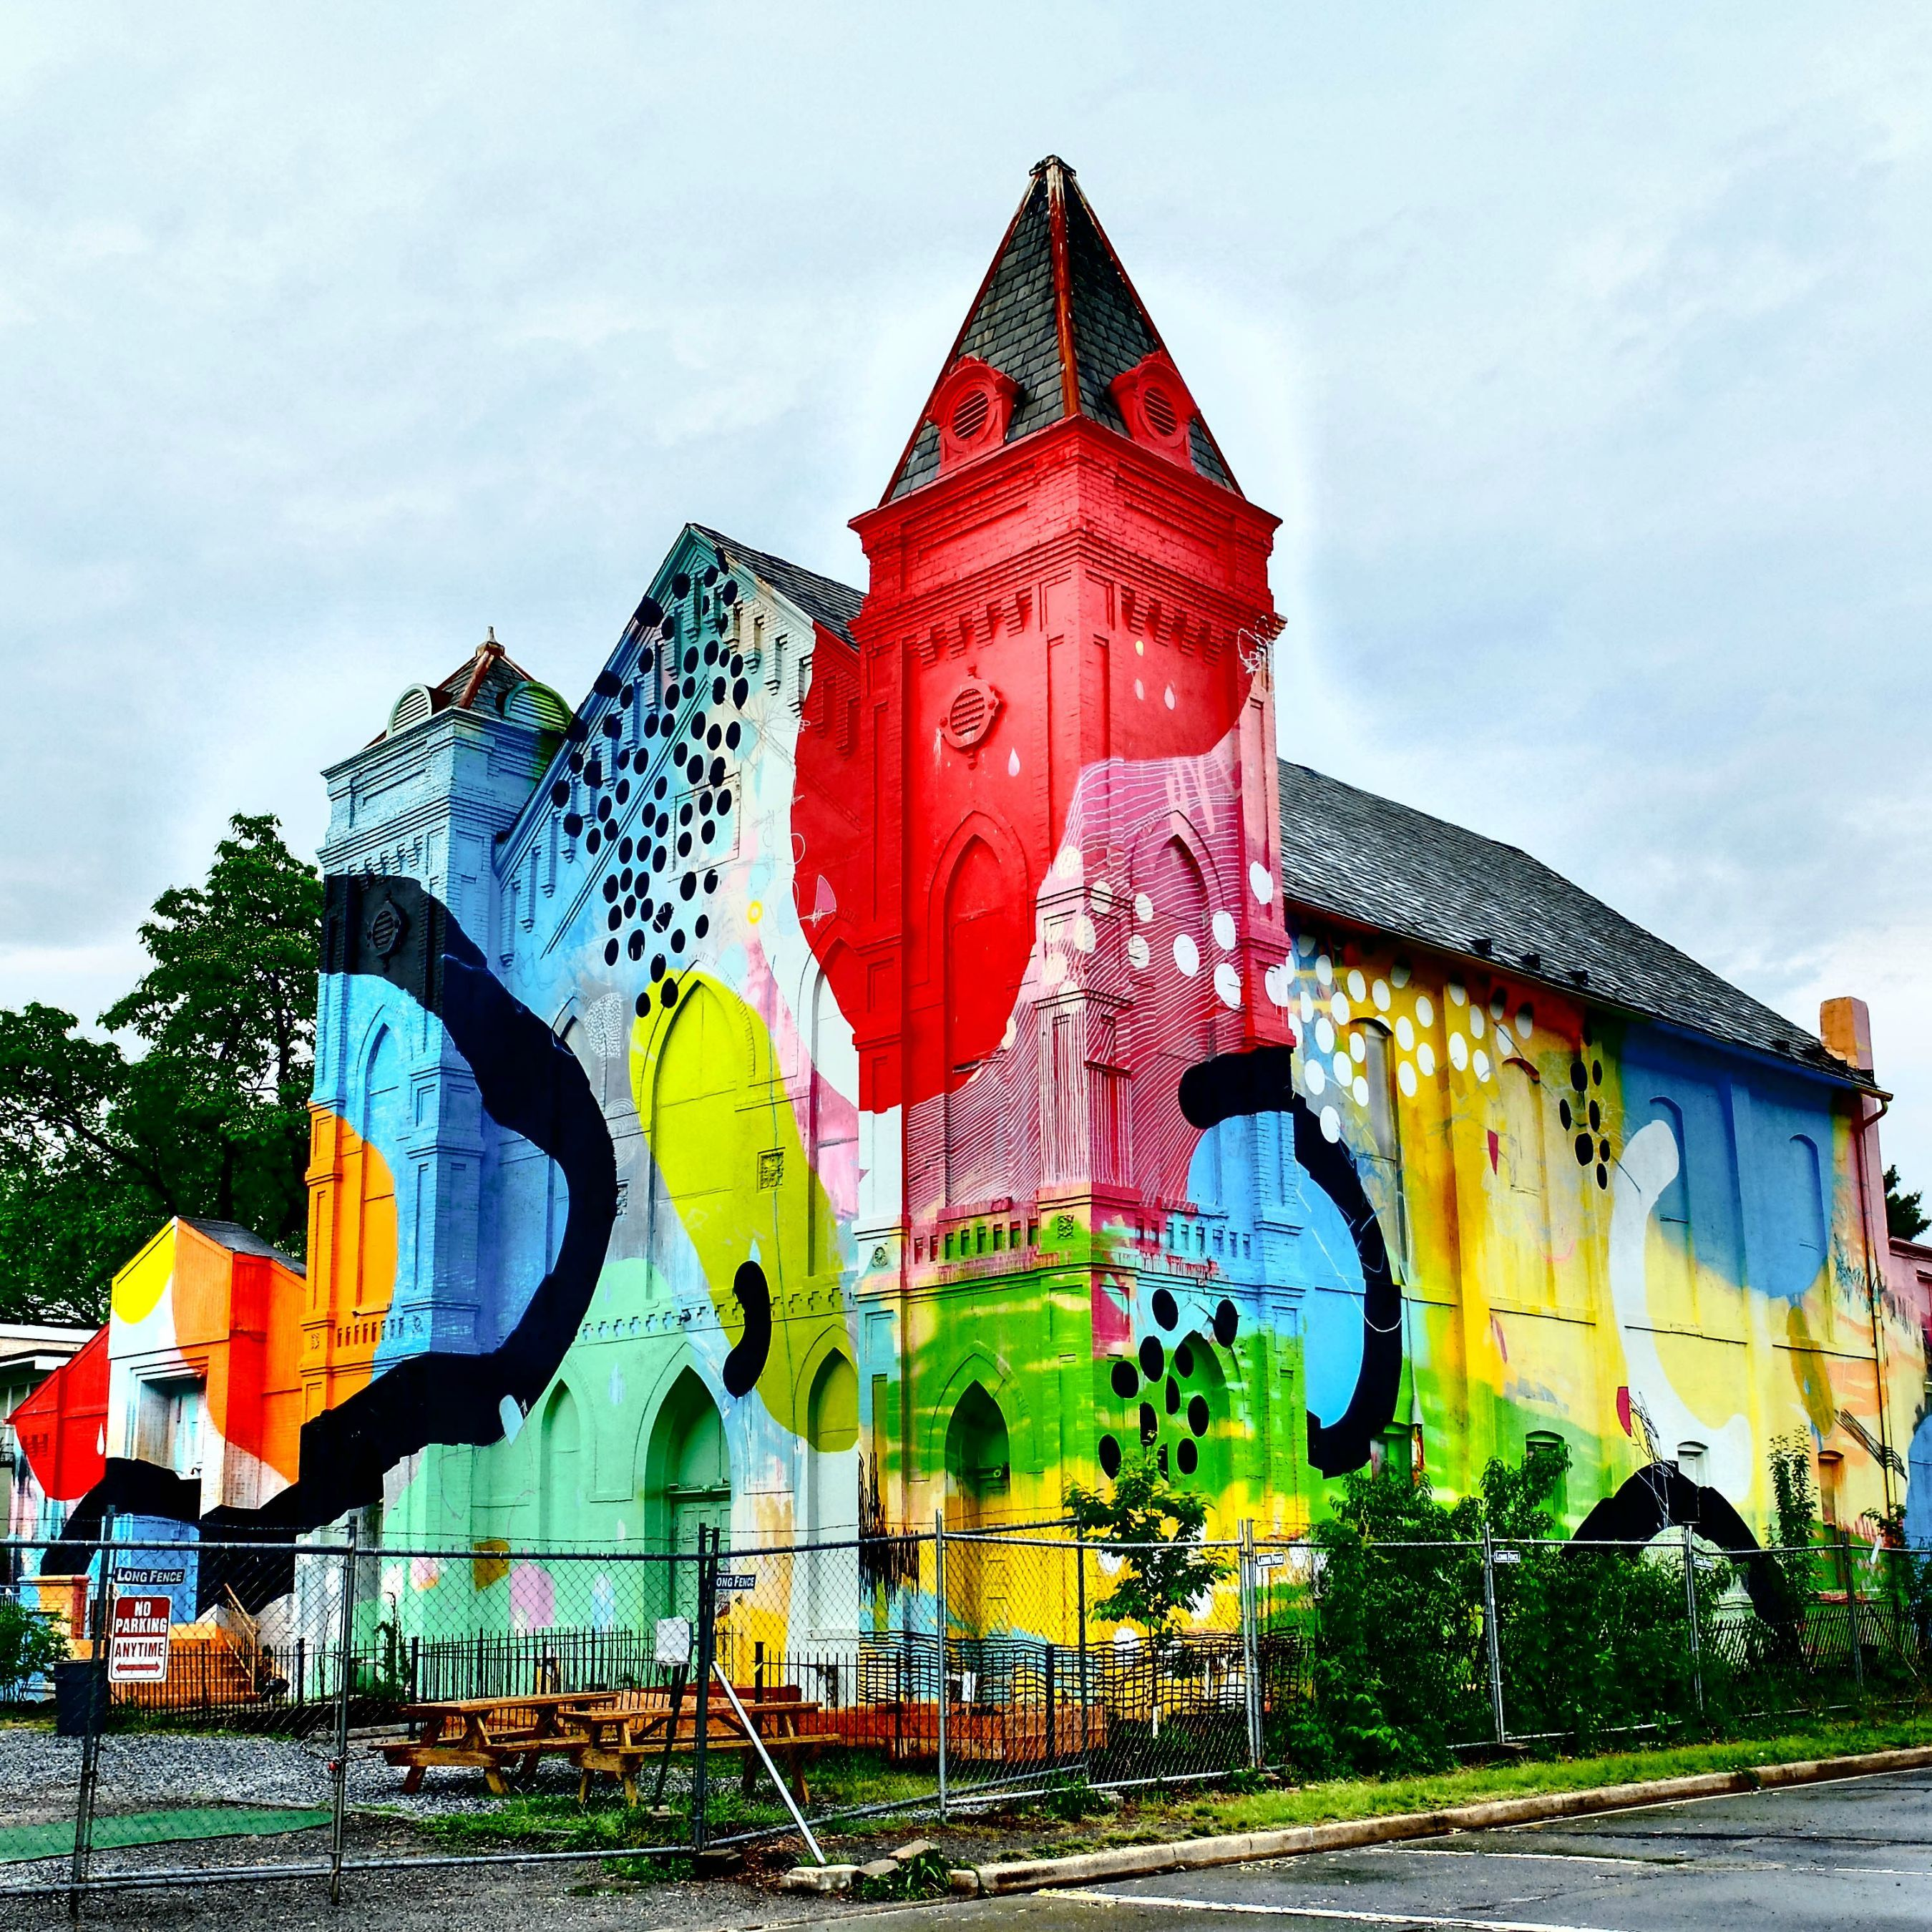 Art Places In Washington Dc: Abandoned Church In SW Washington DC, Painted Over By